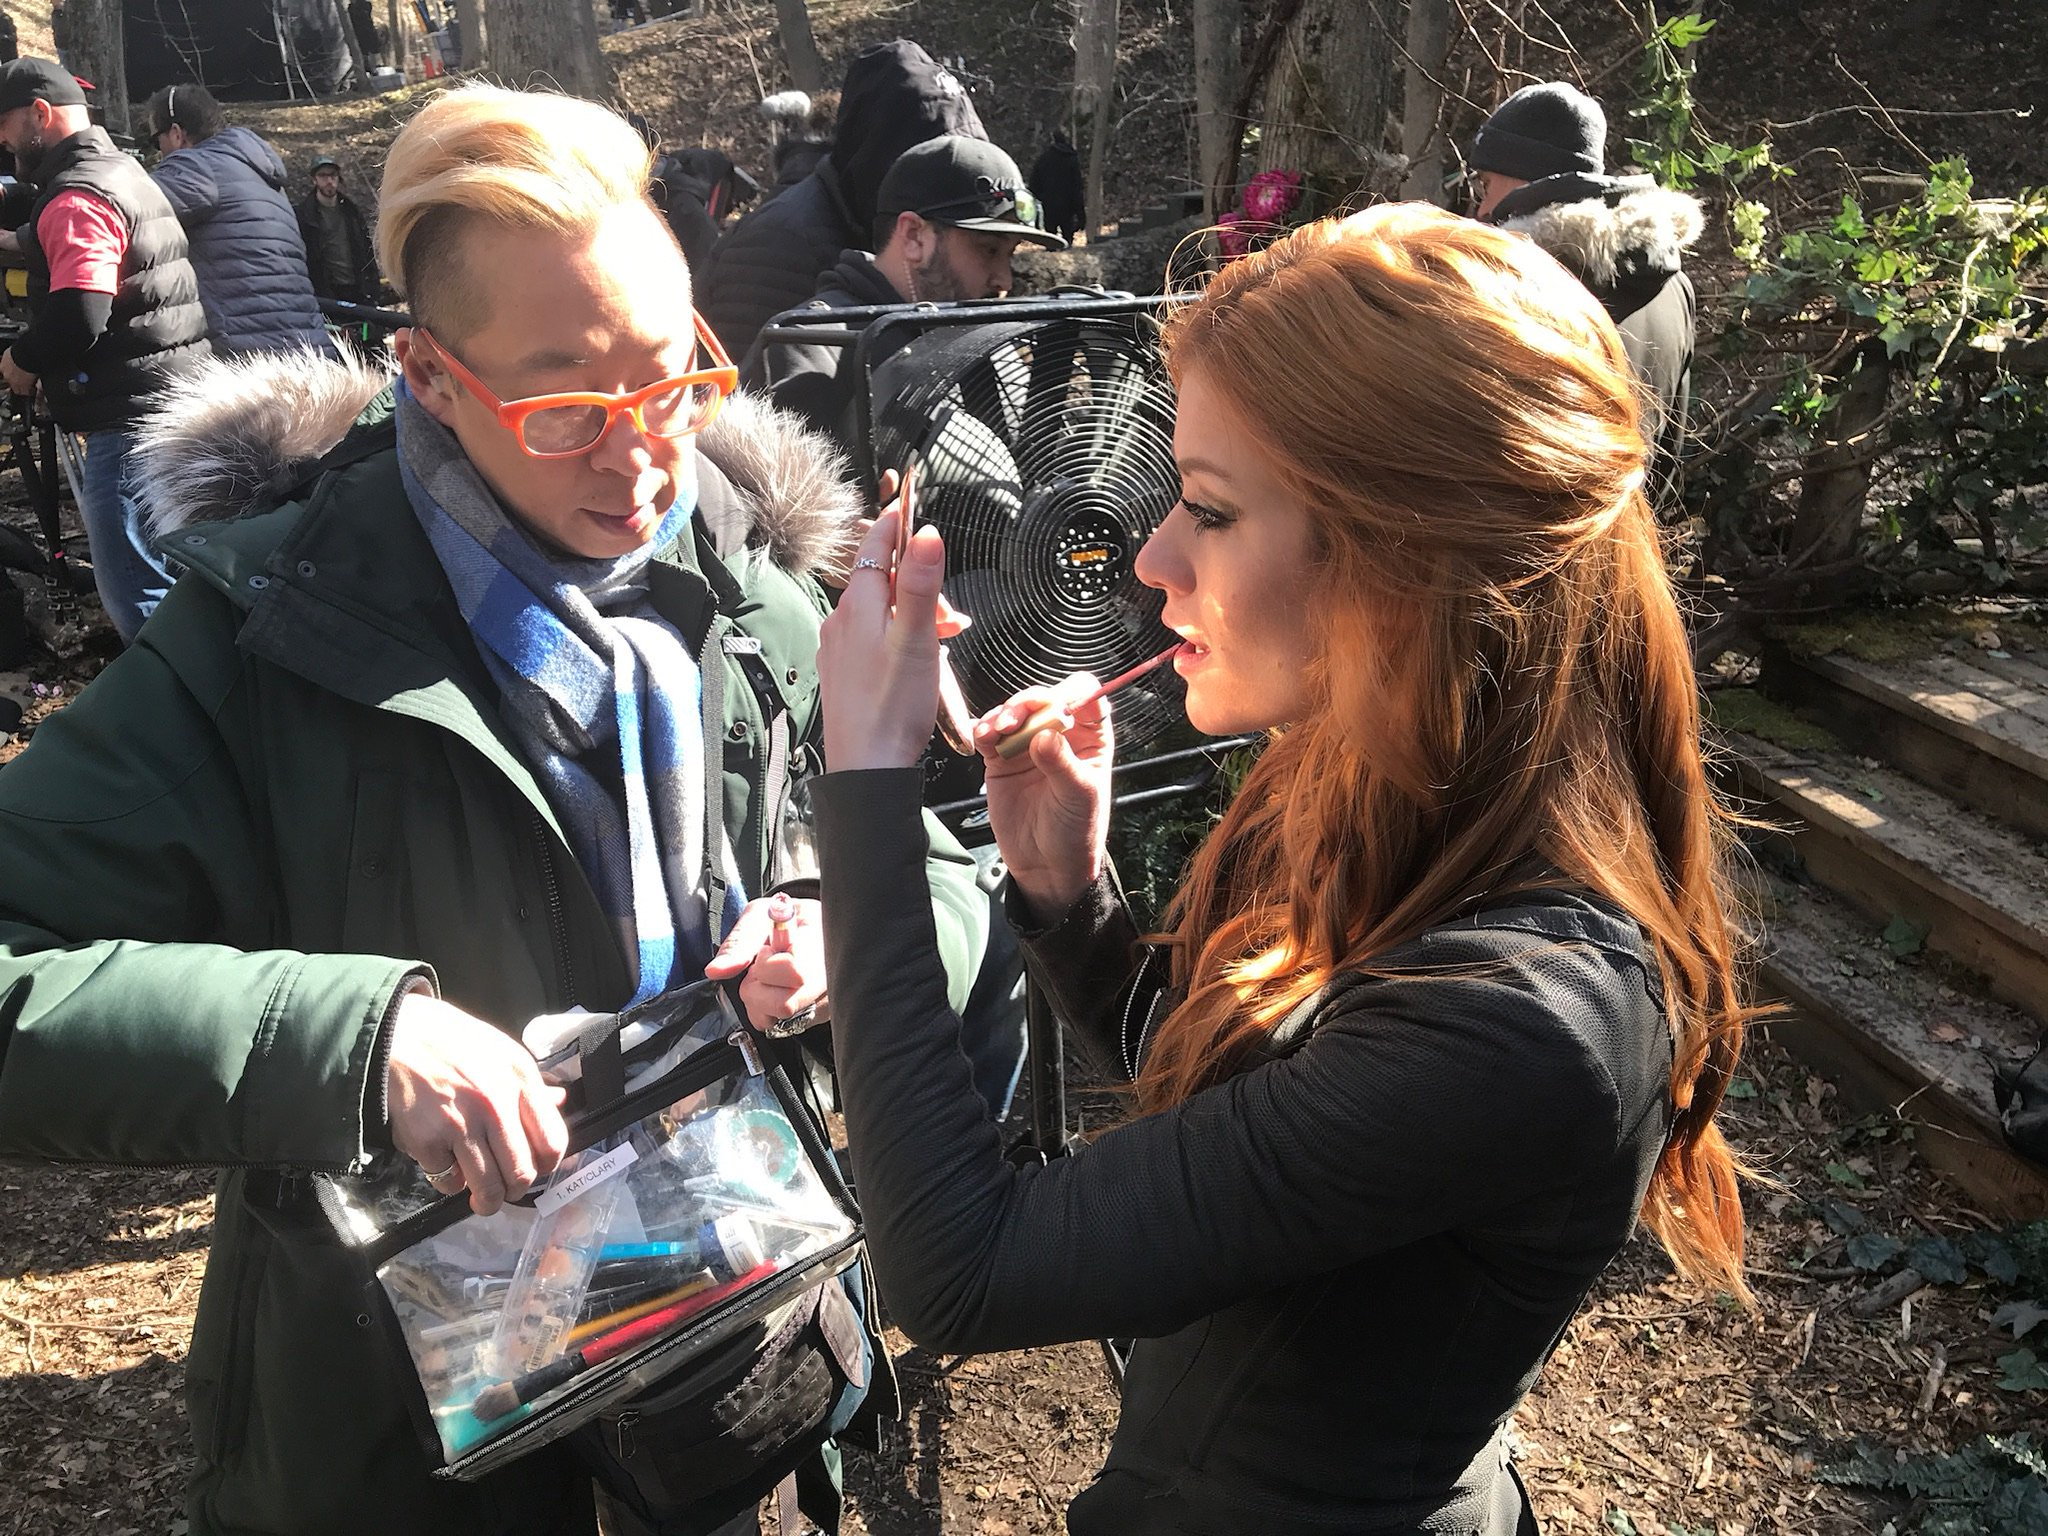 Katherine Mcnamara On Twitter When Fighting Your Boyfriend In The Woods Bribriguy23 Knows That Lipstick Is Very Important Shadowhunterstv Shadowhunterschat Shadowhunterslegacy Https T Co Vuvzfwlj0t